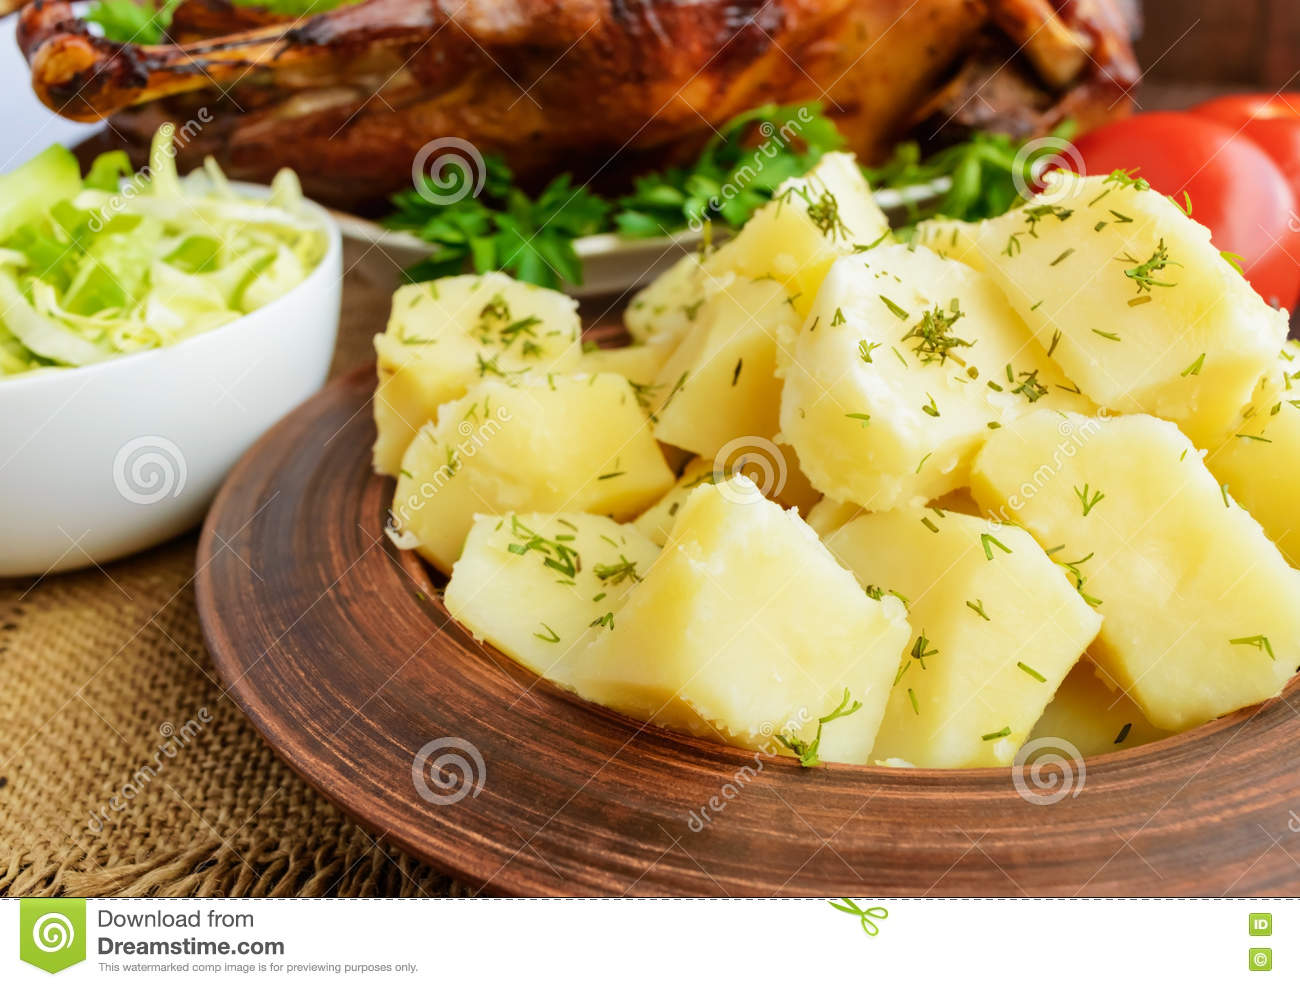 Boiled potatoes in a clay bowl and roasted goose.